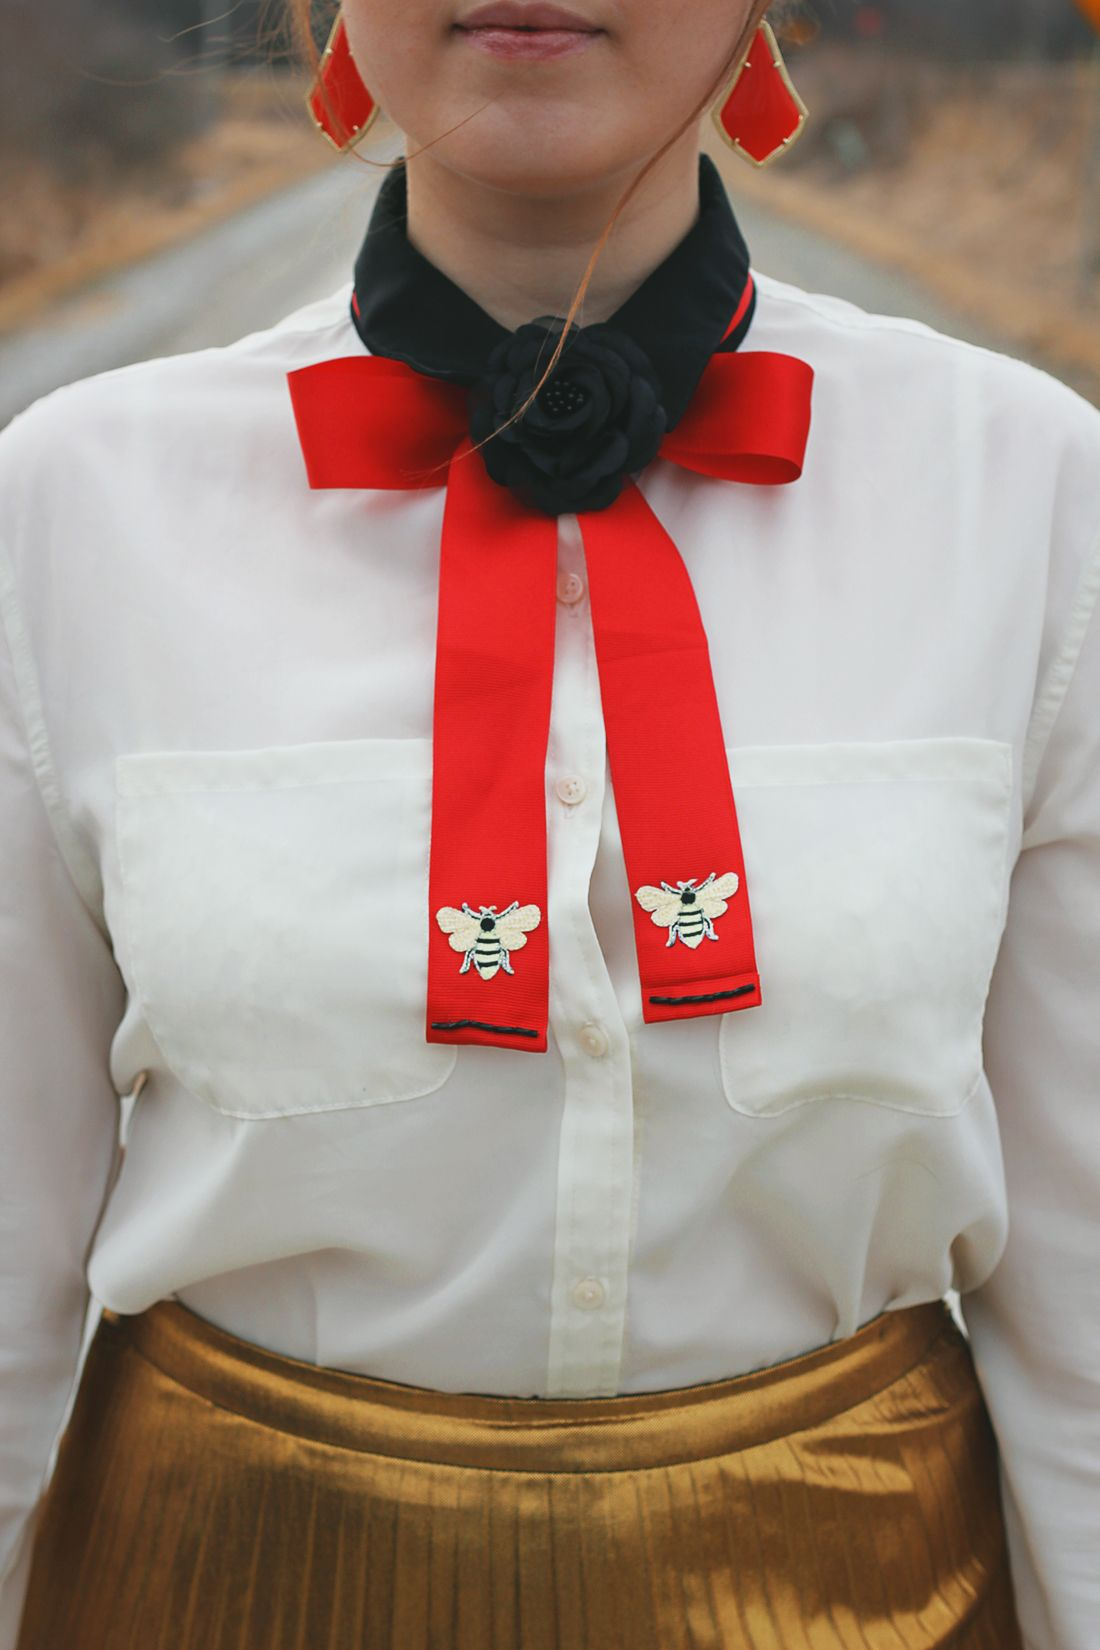 c5e4a03c1fa Try this easy 30-minute DIY Gucci-inspired bow tie finished with playful  embroidered bee patches and a cute flower brooch.